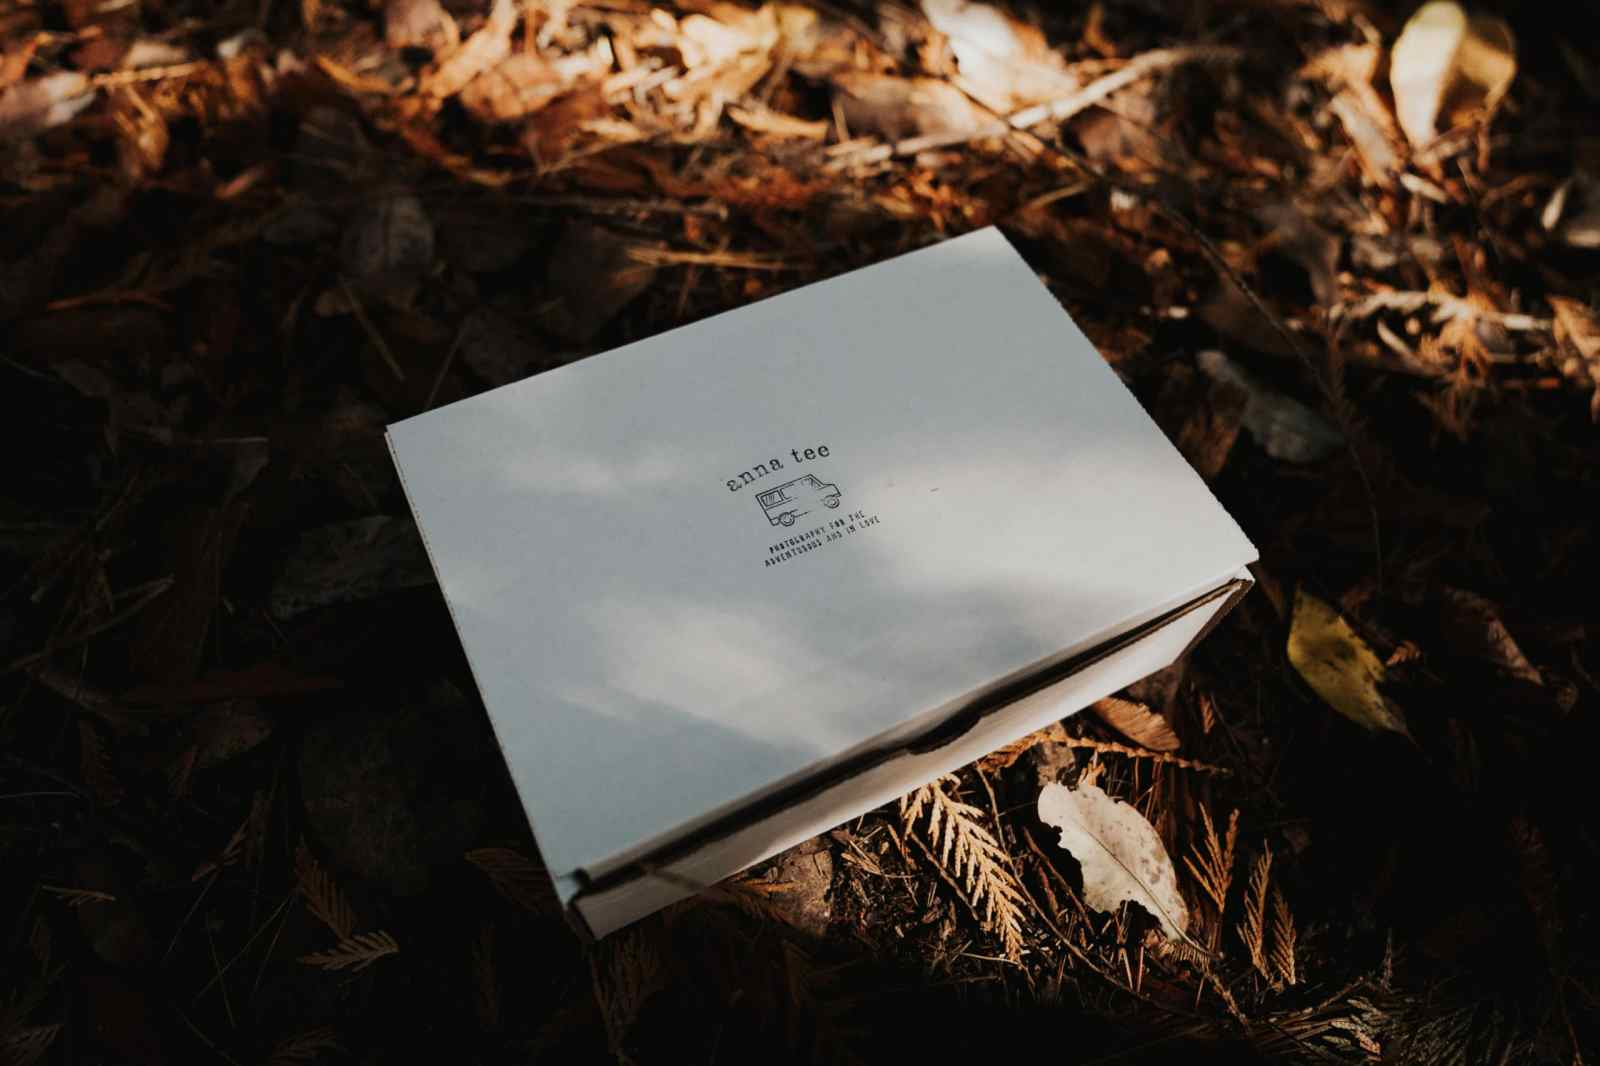 A white wedding photography client gift box is lying on the ground, on top of some brown leaves.